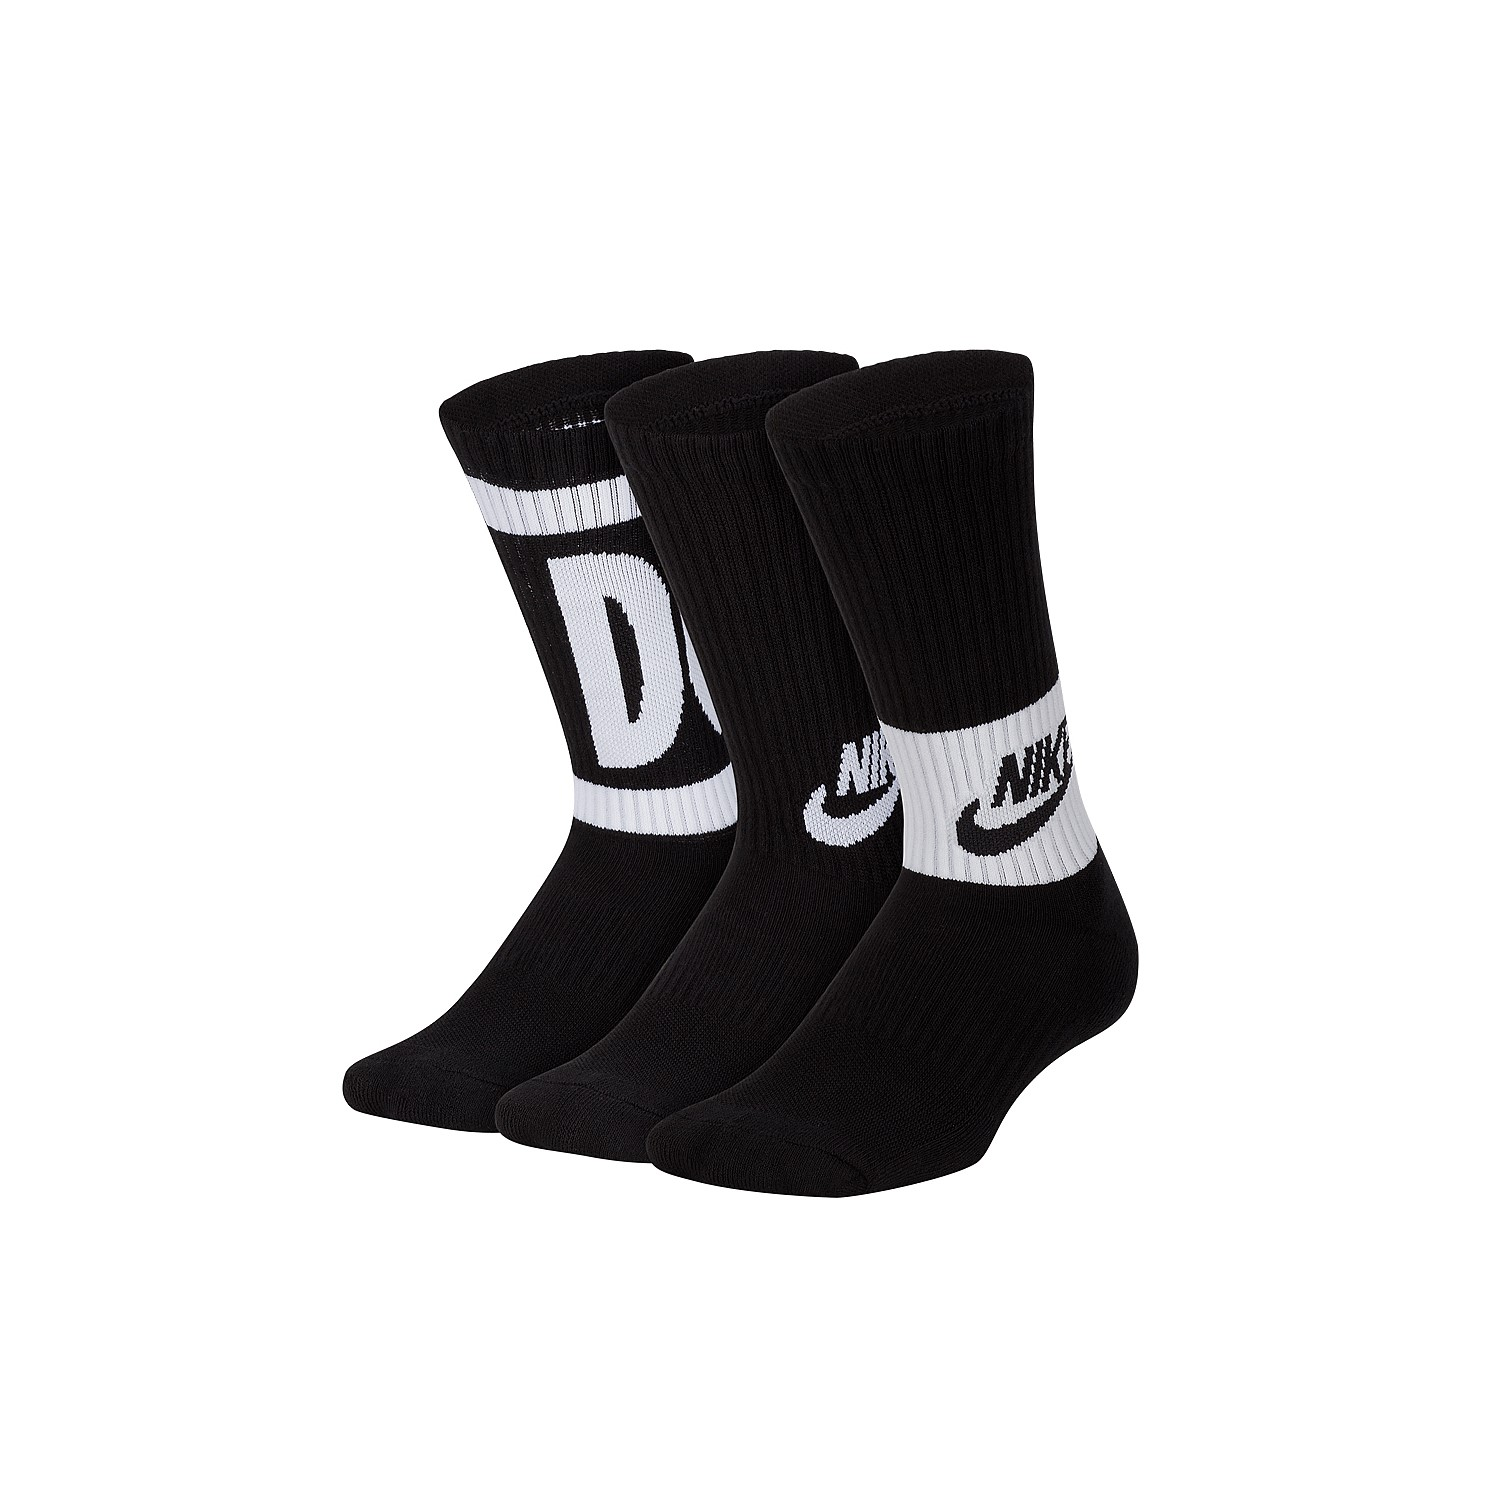 e8b464328 Kid's Accessories | Kid's Lifestyle and Training Accessories Online |  Stirling Sports - Performance Cushioned Crew Training Sock Kids 3 Pack